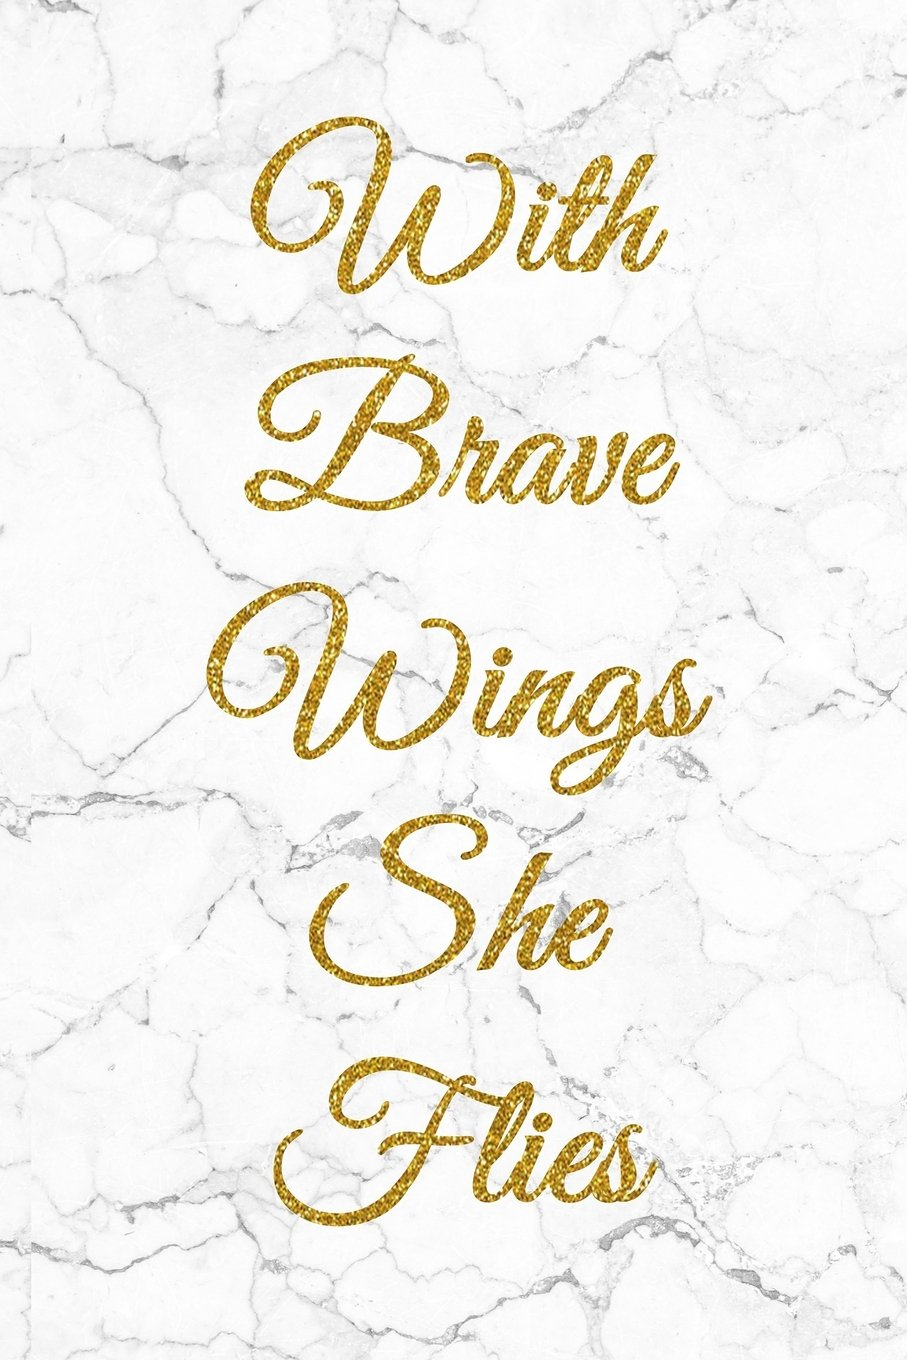 With Brave Wings She Flies: 100 Inspirational Quotes Inside ...